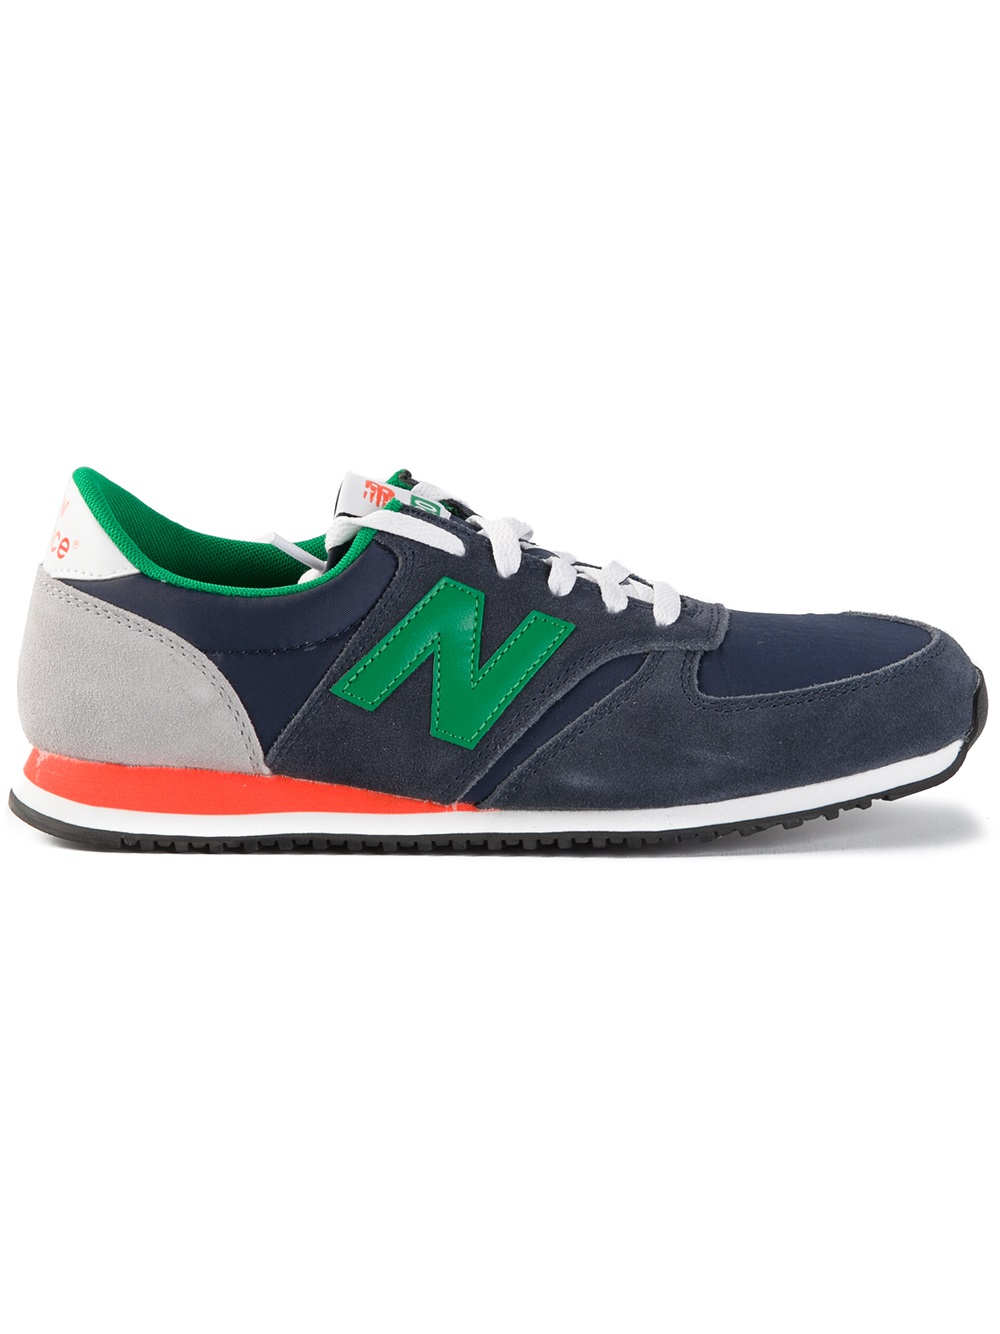 New Balance Shoes Barrie